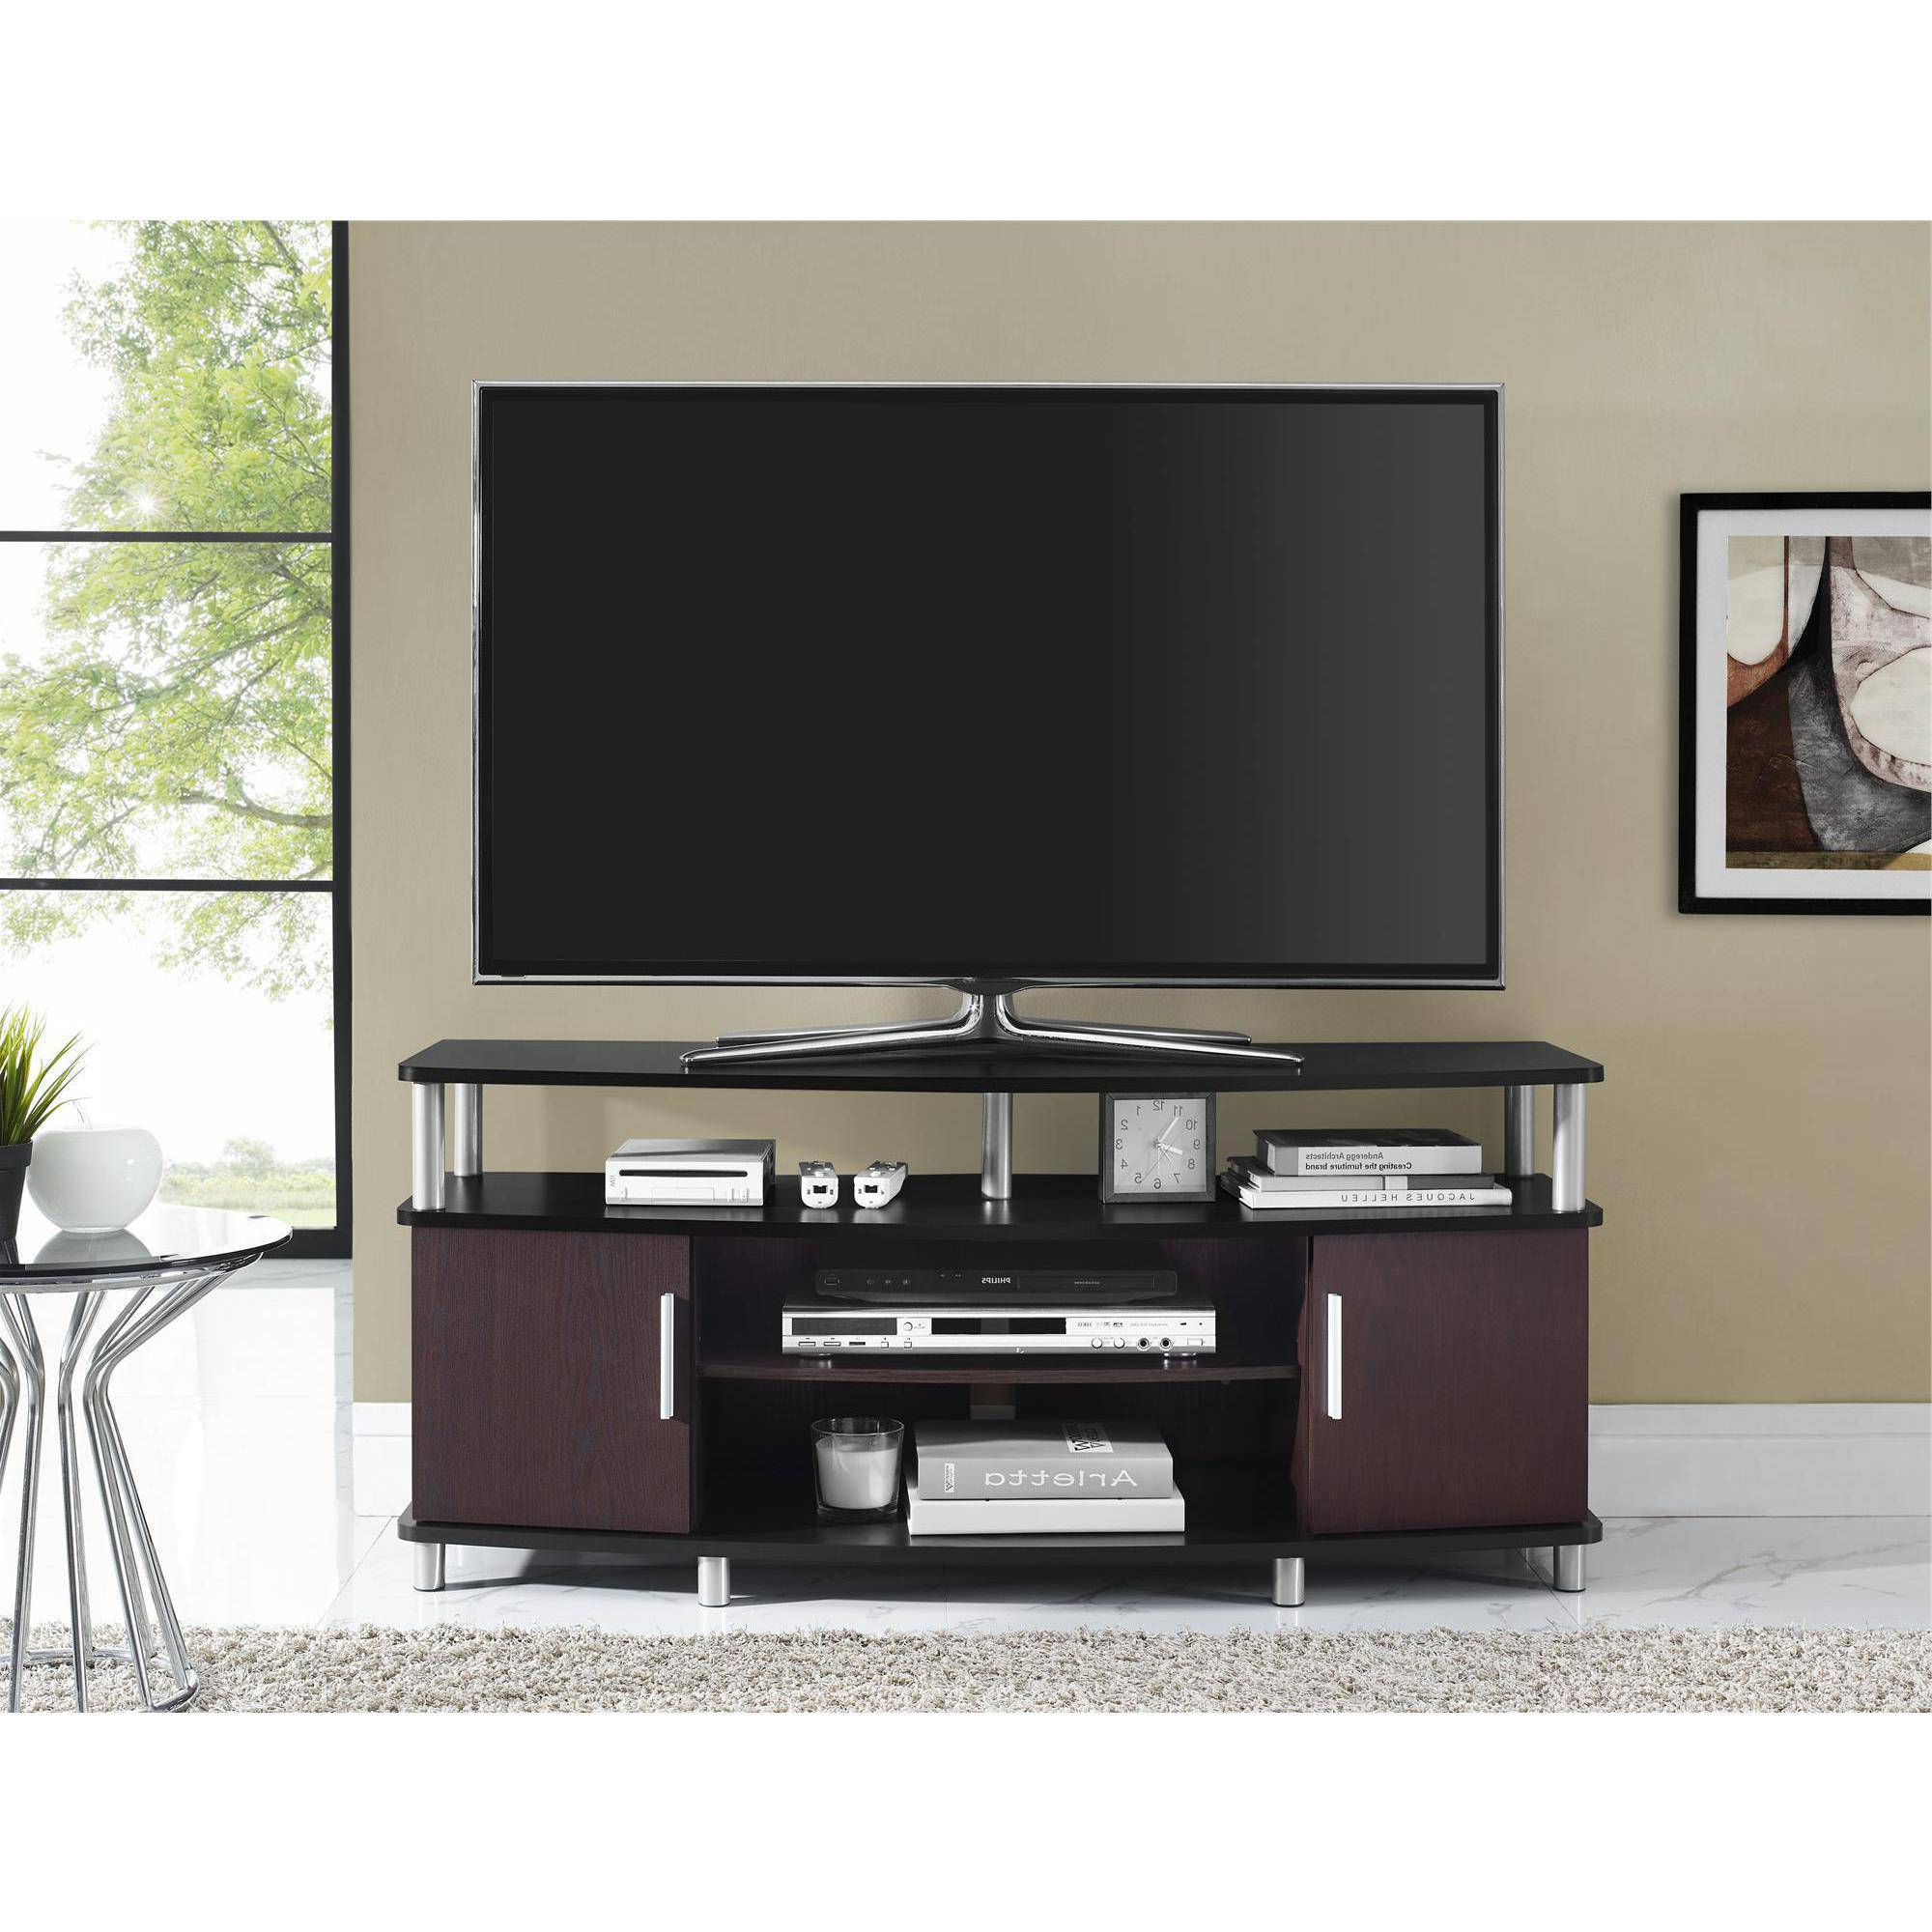 Drop Dead Gorgeous Media Furniture For 65 Inch Tv Comfortable Long Throughout Willa 80 Inch Tv Stands (View 5 of 20)